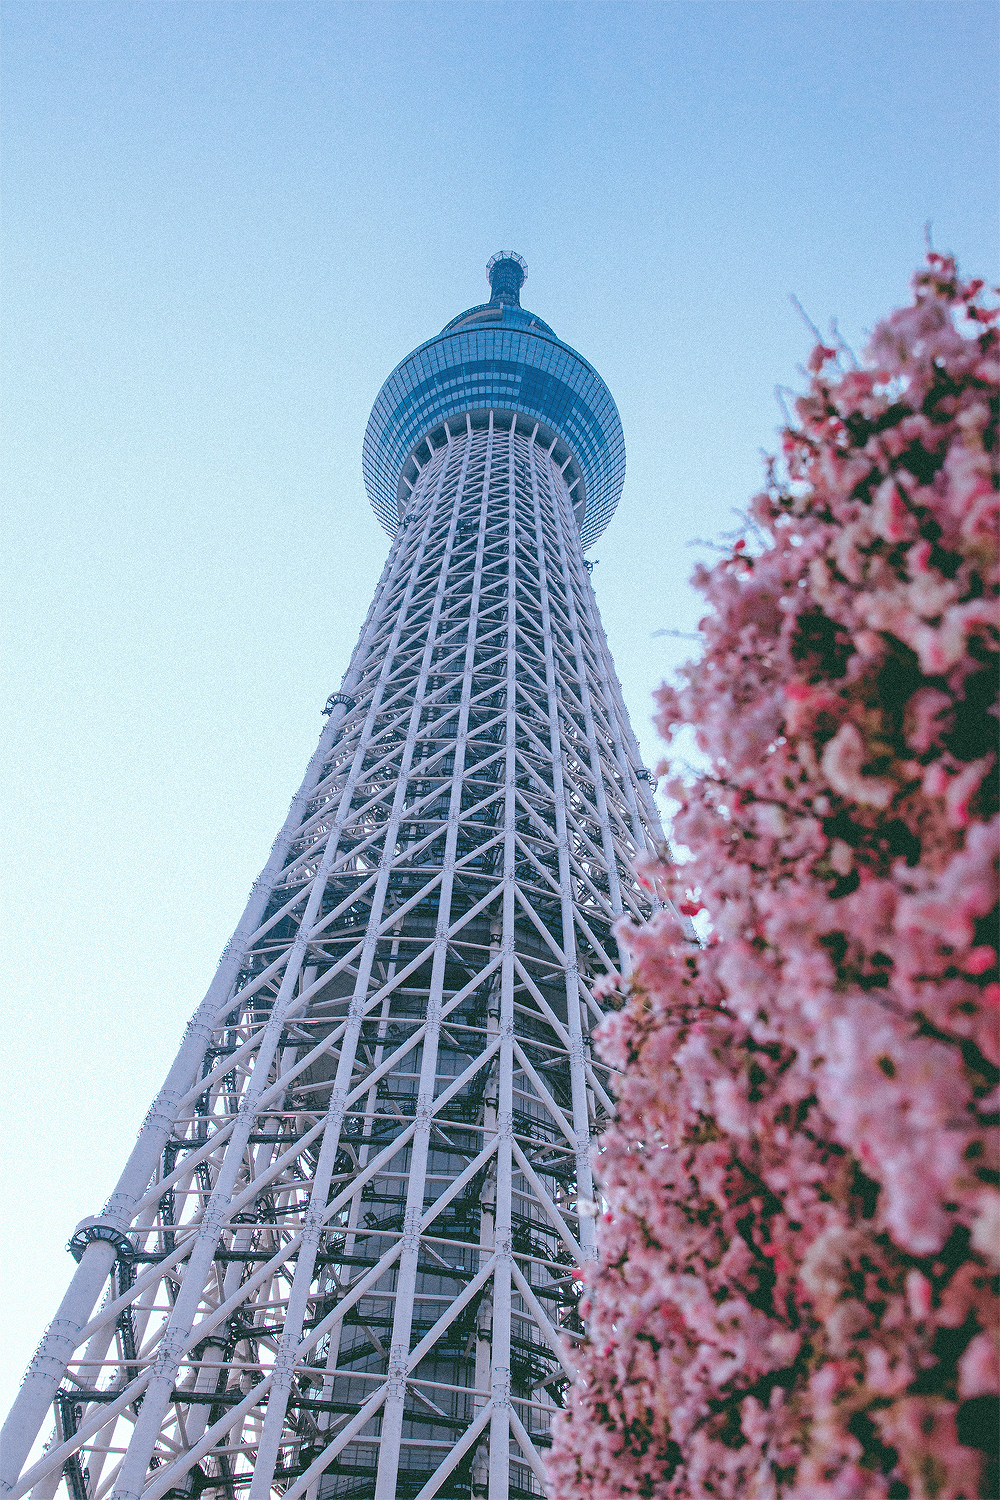 It was finally time to visit the actual SkyTree, which was a little overwhelming.